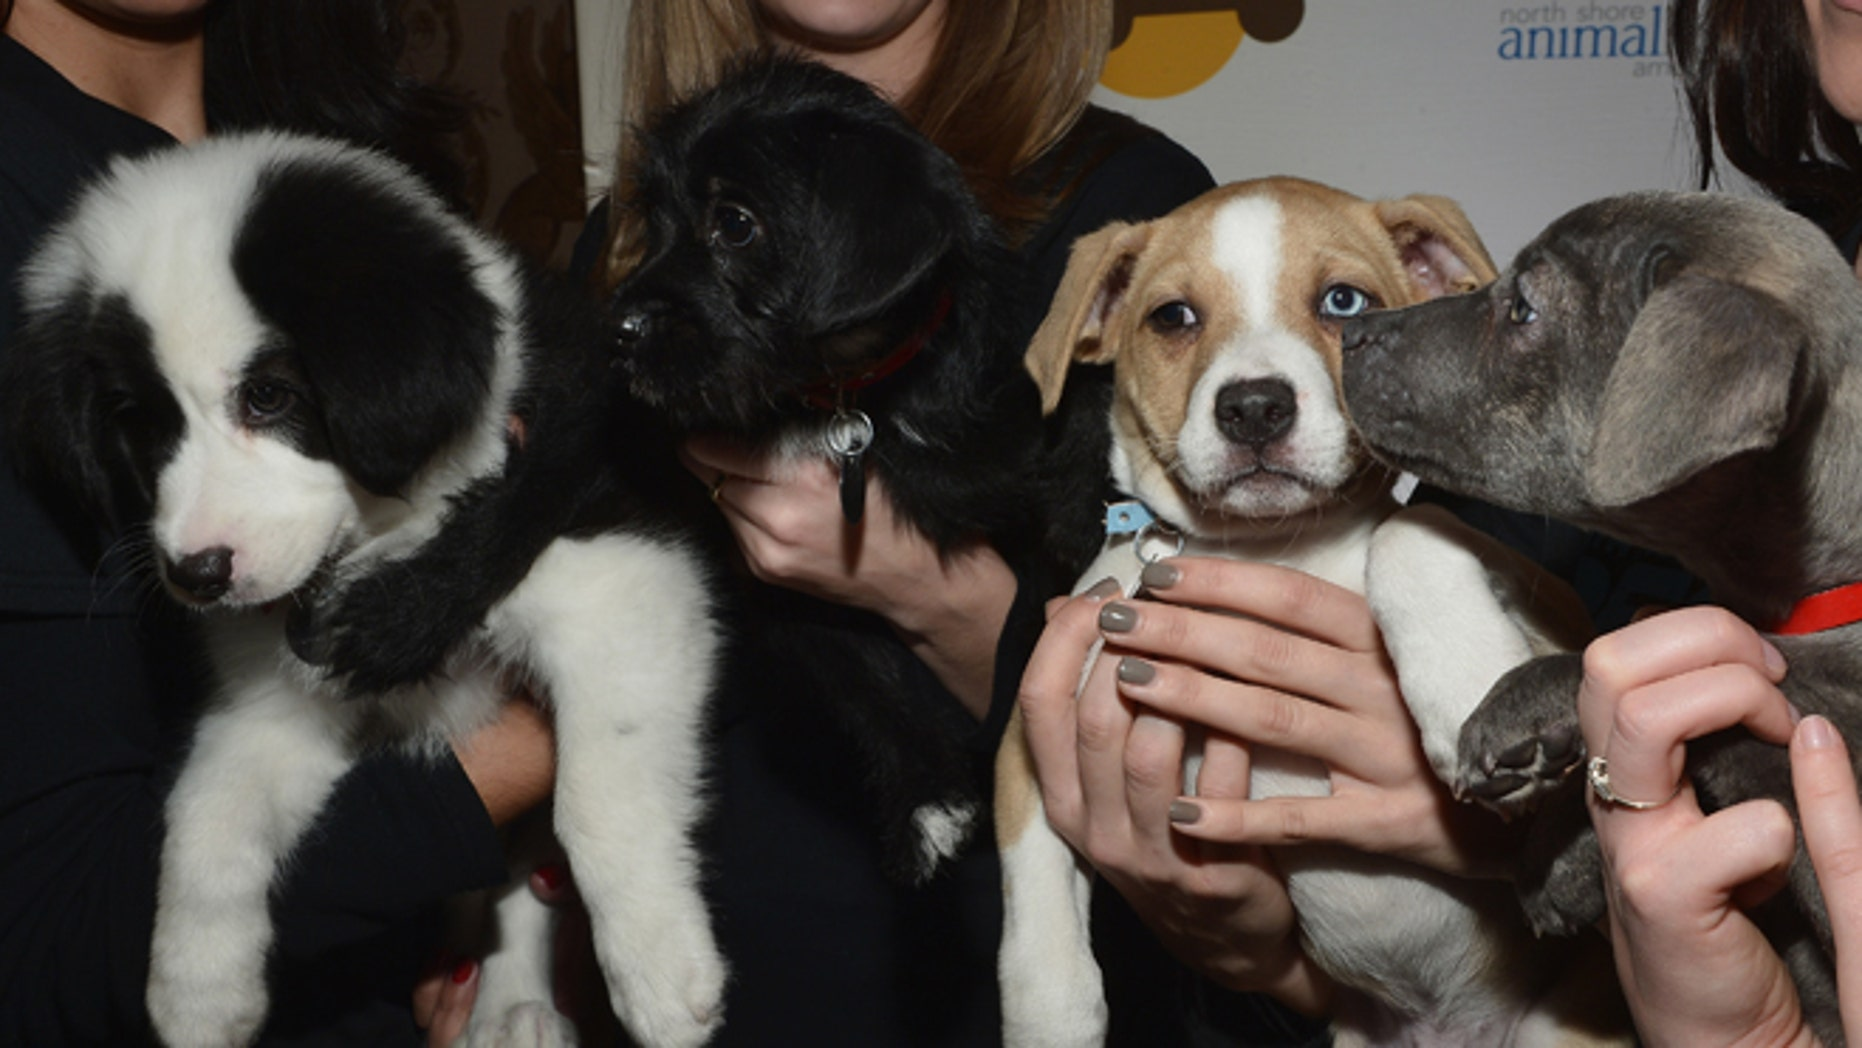 NEW YORK, NY - NOVEMBER 22:  A view of puppies at the 2013 Animal League America Celebrity gala at The Waldorf=Astoria on November 22, 2013 in New York City.  (Photo by Mike Coppola/Getty Images)